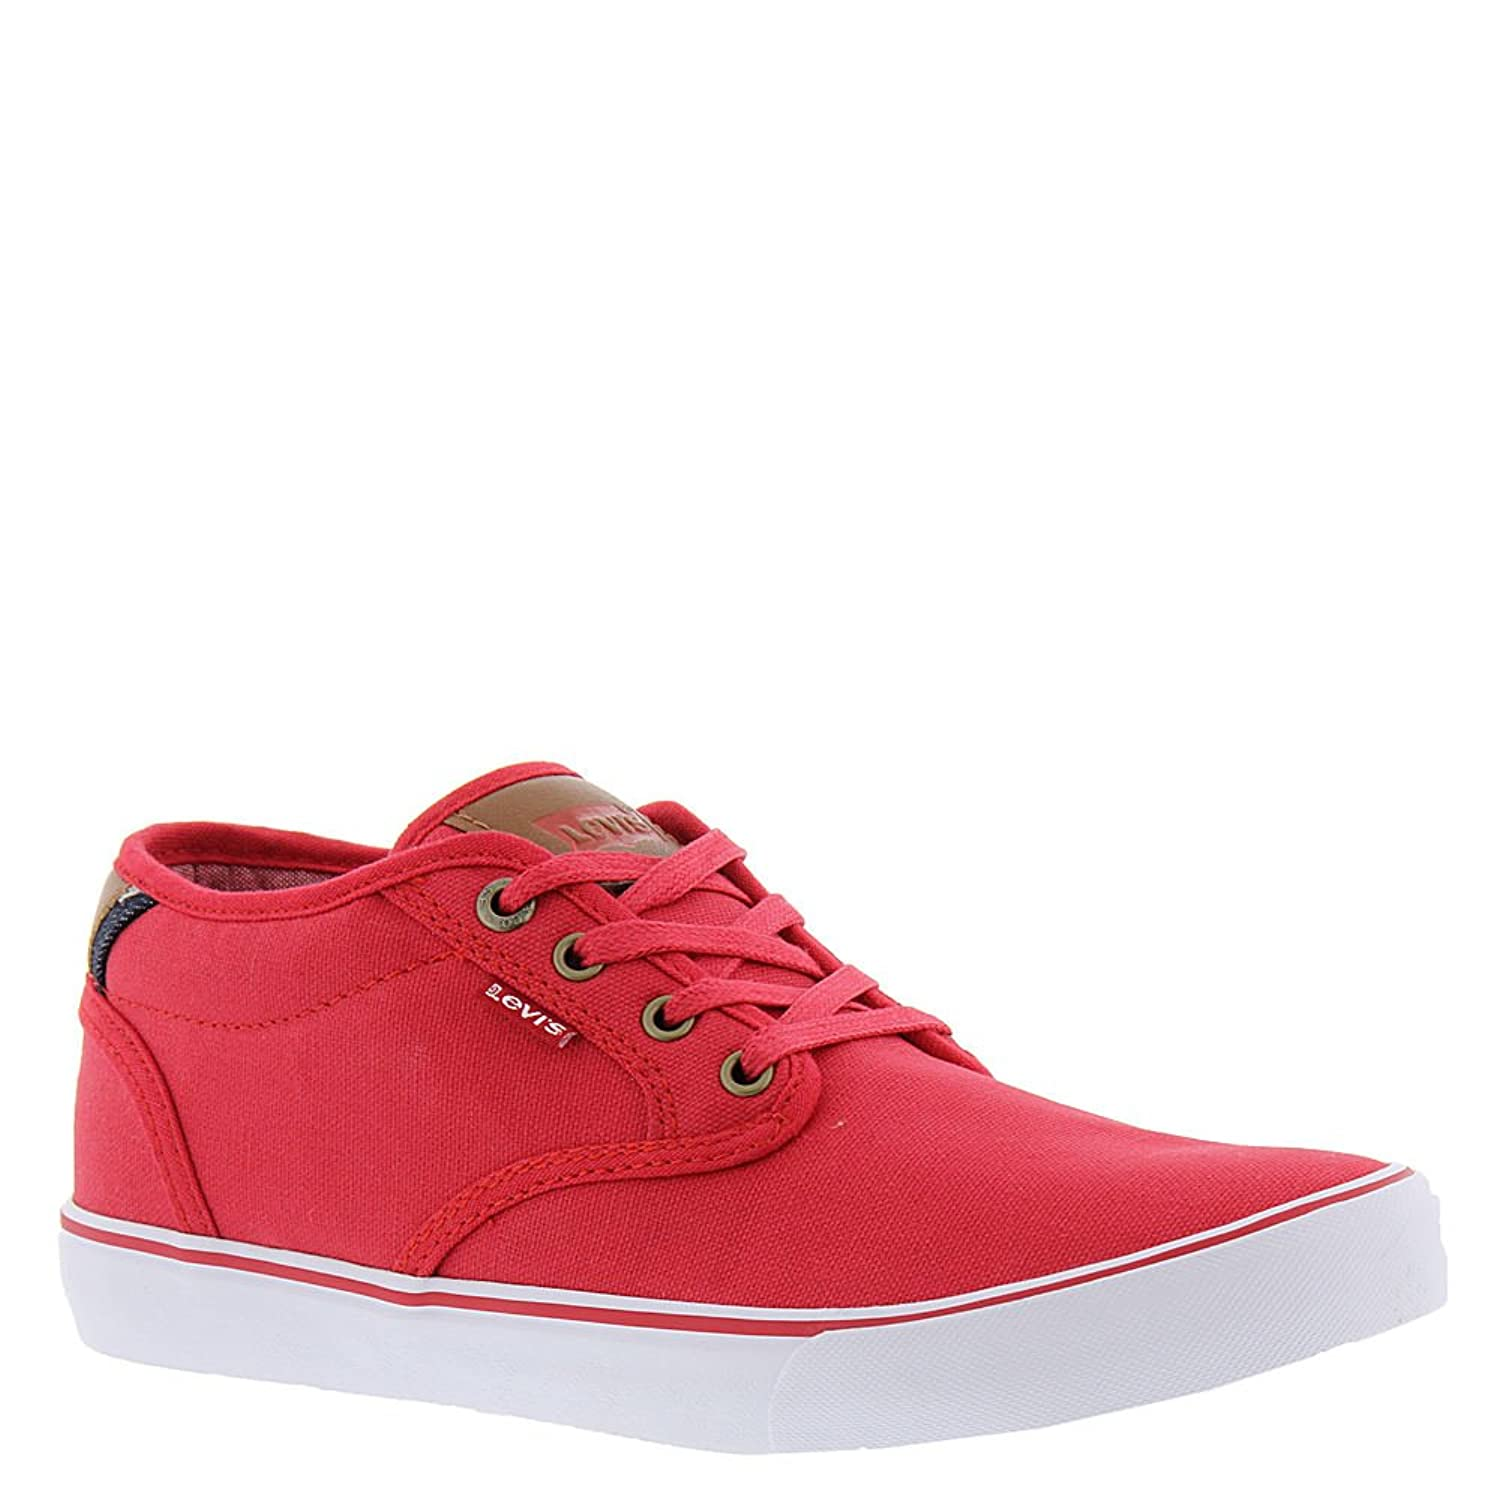 [リーバイス] Kids Boys cali core Low Top Lace Up Fashion Sneaker [並行輸入品]